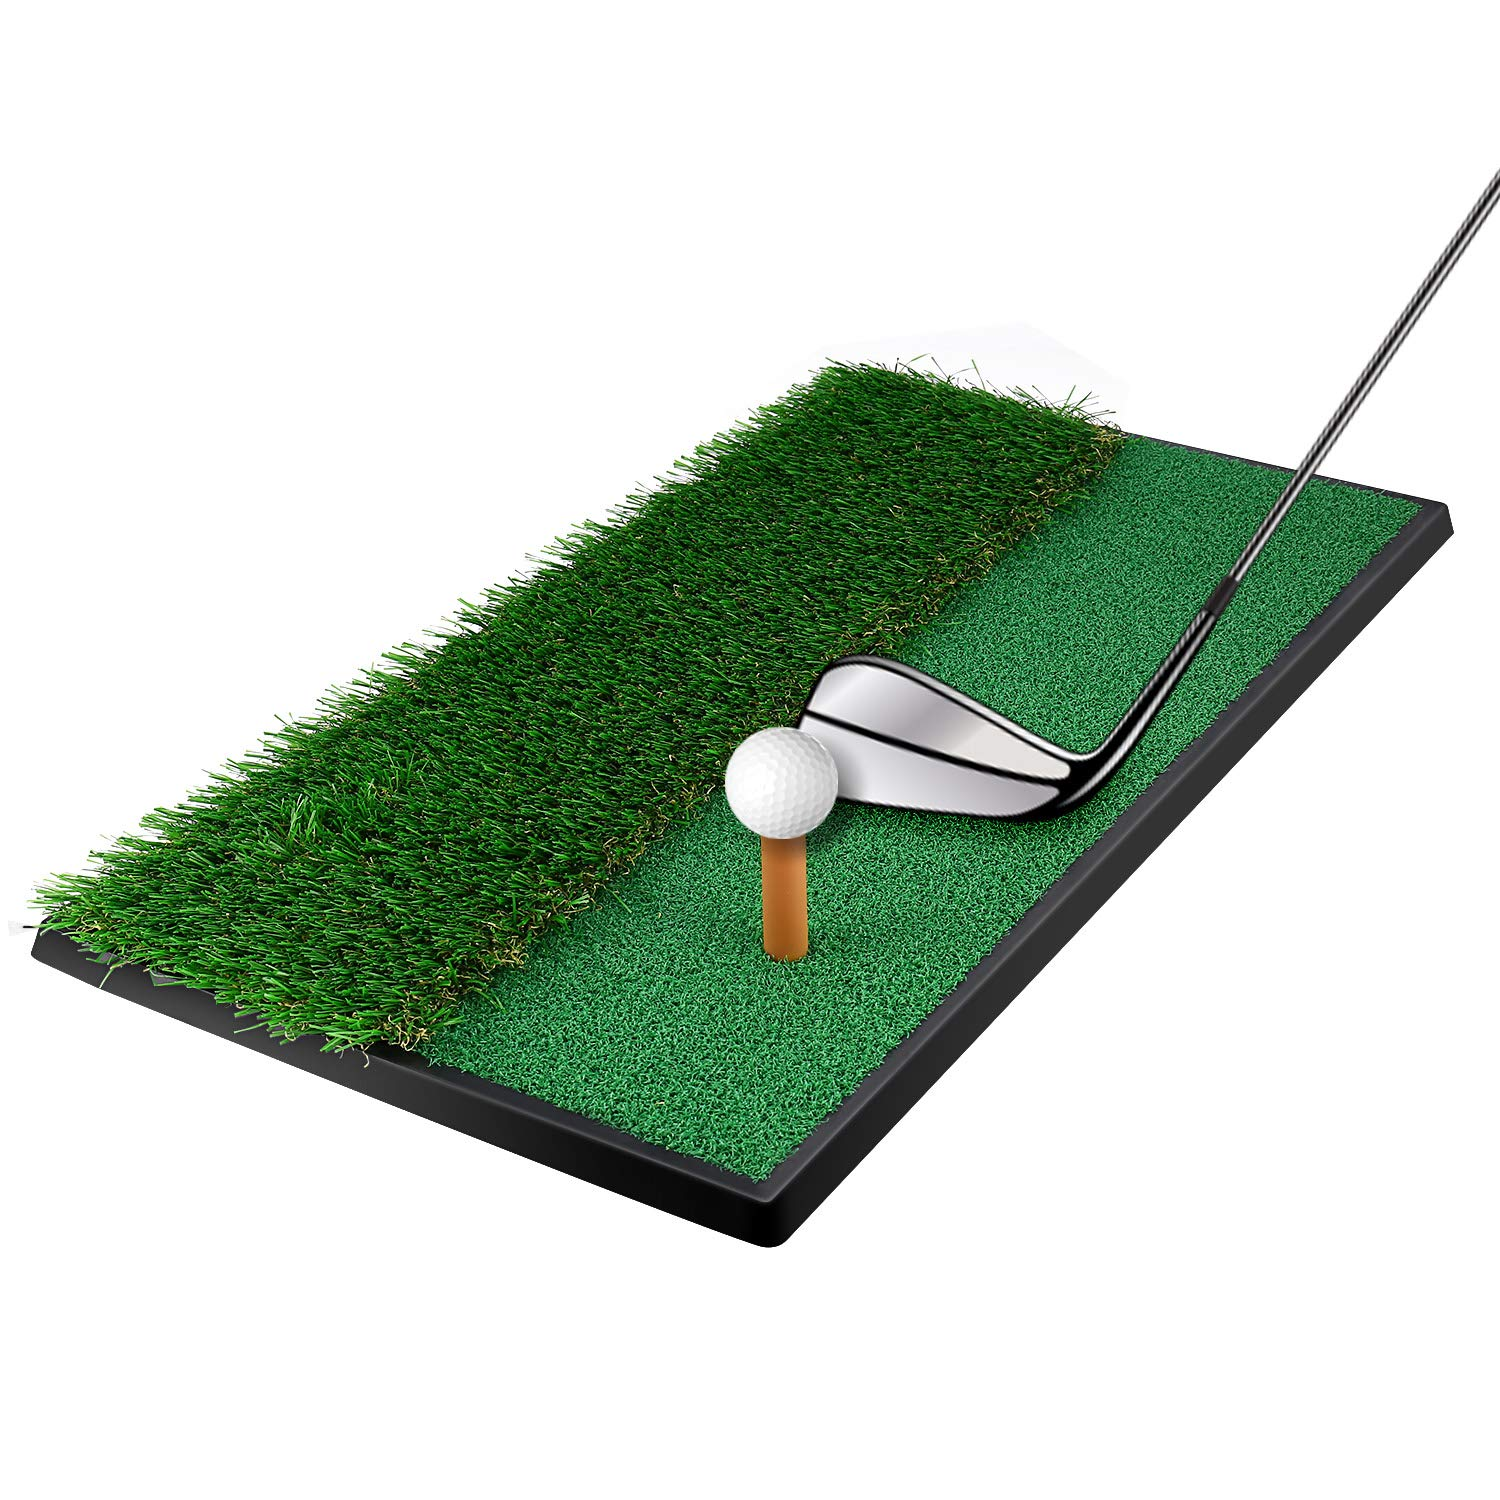 OUTAD Golf Putting Mat 12in24in Outdoor/Indoor Training Equipment Aid Golf Practice Mat by OUTAD